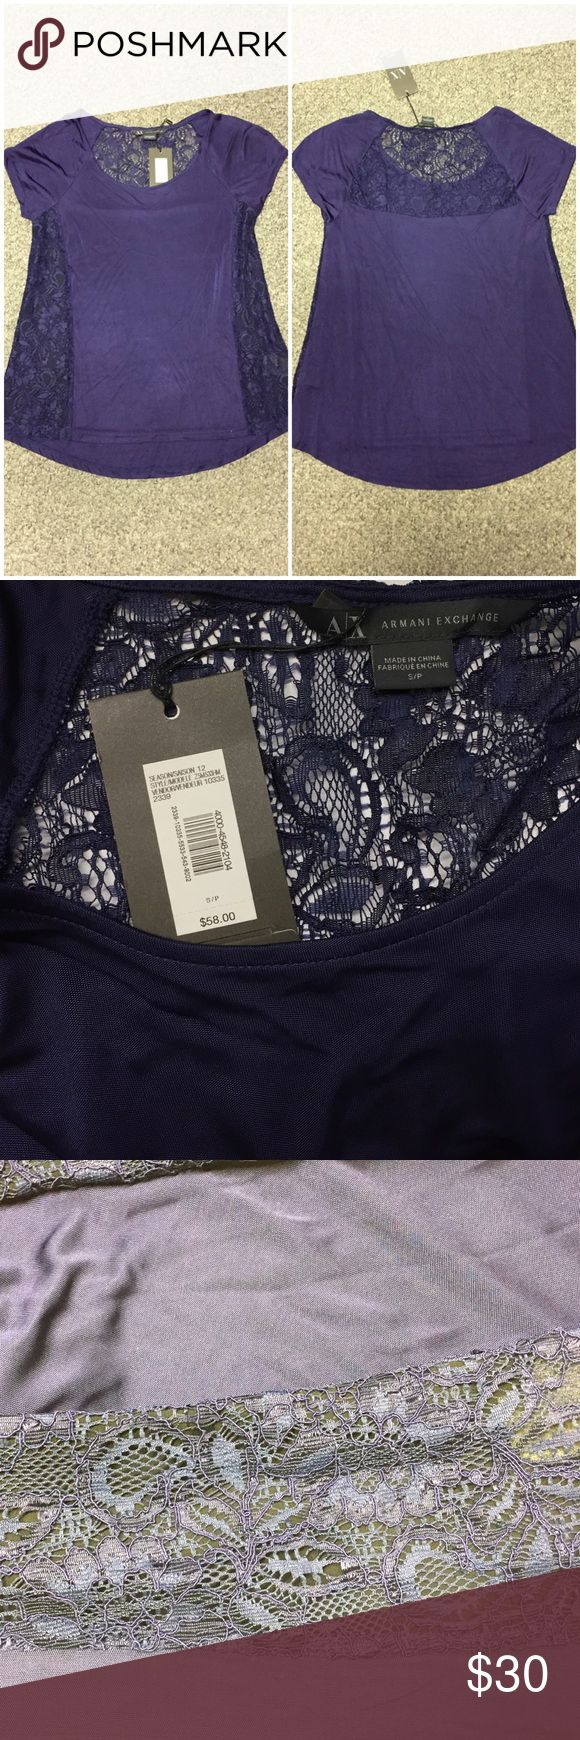 "A/X Armani Exchange lace paneled blouse 🌟NWT!🌟 A/X Armani Exchange blouse with lace details on the side and the top of the back. The blouse is made of rayon and has a silk-like look/feel to it. The color is called""ultraviolet"" and it has a purple/indigo look. 🌟Offers always welcome 🌟 NWT 🌟 A/X Armani Exchange Tops Blouses"